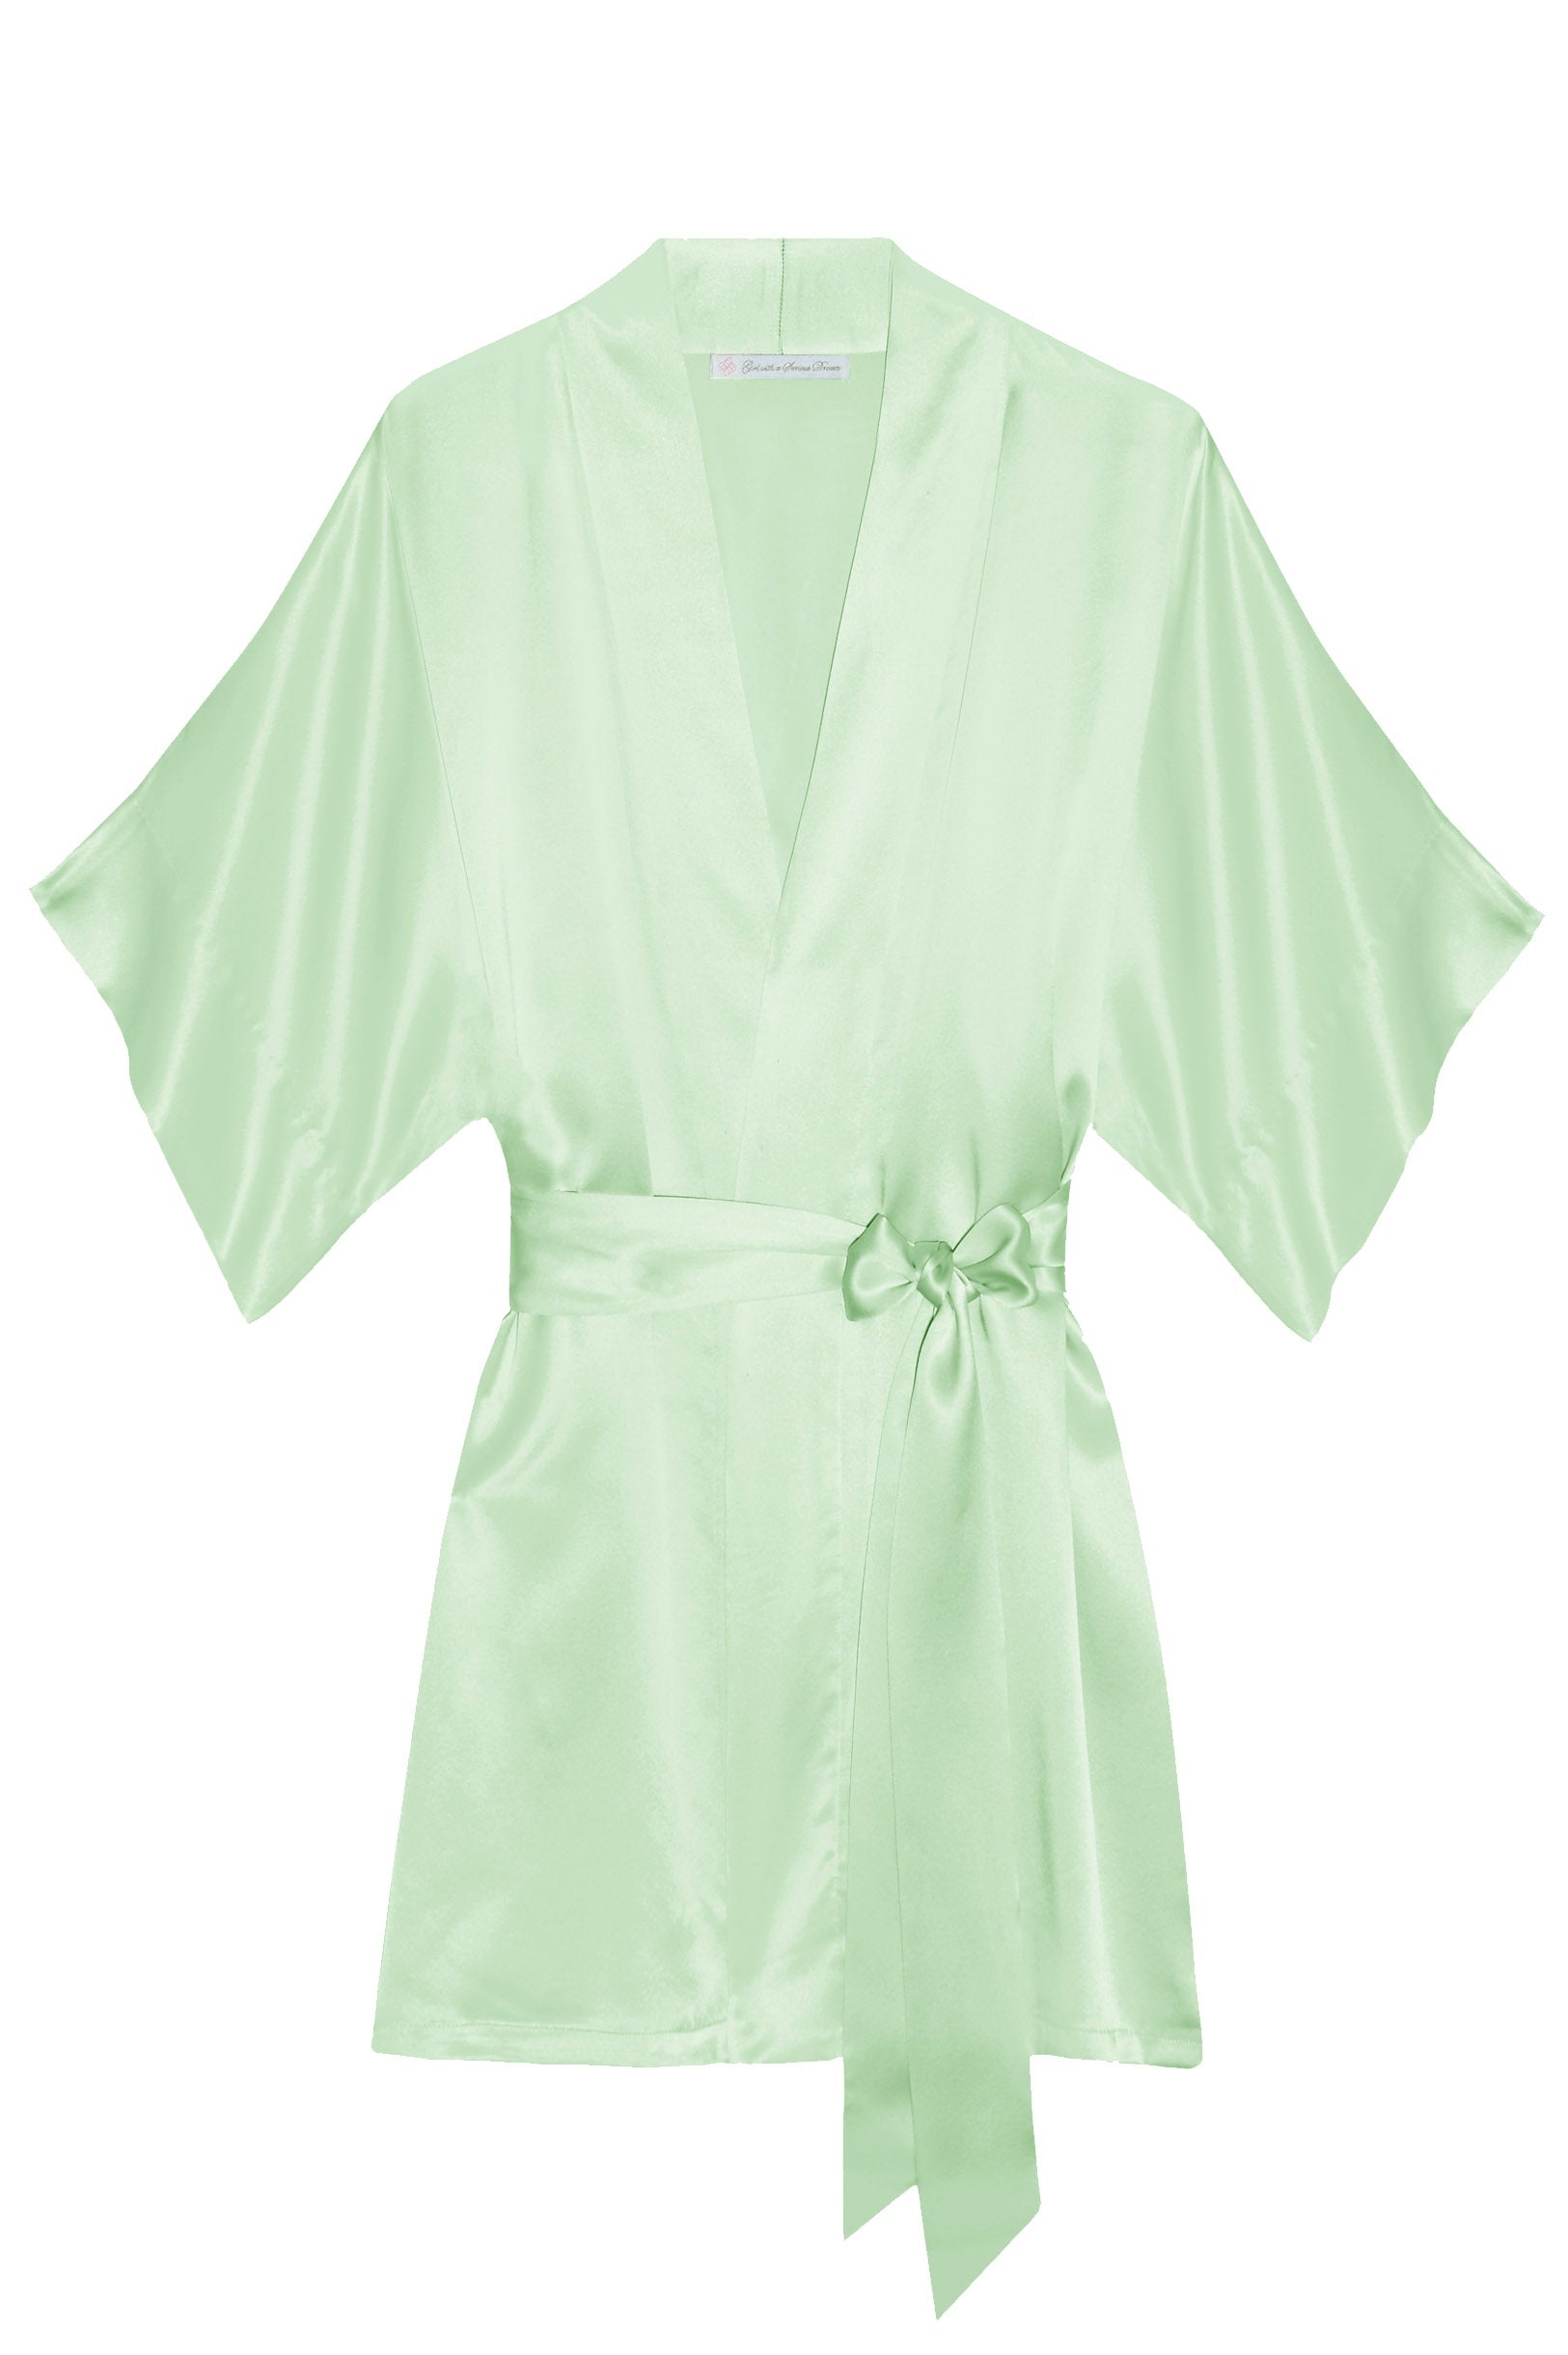 Samantha Silk Kimono Robe in Mint green - style 300